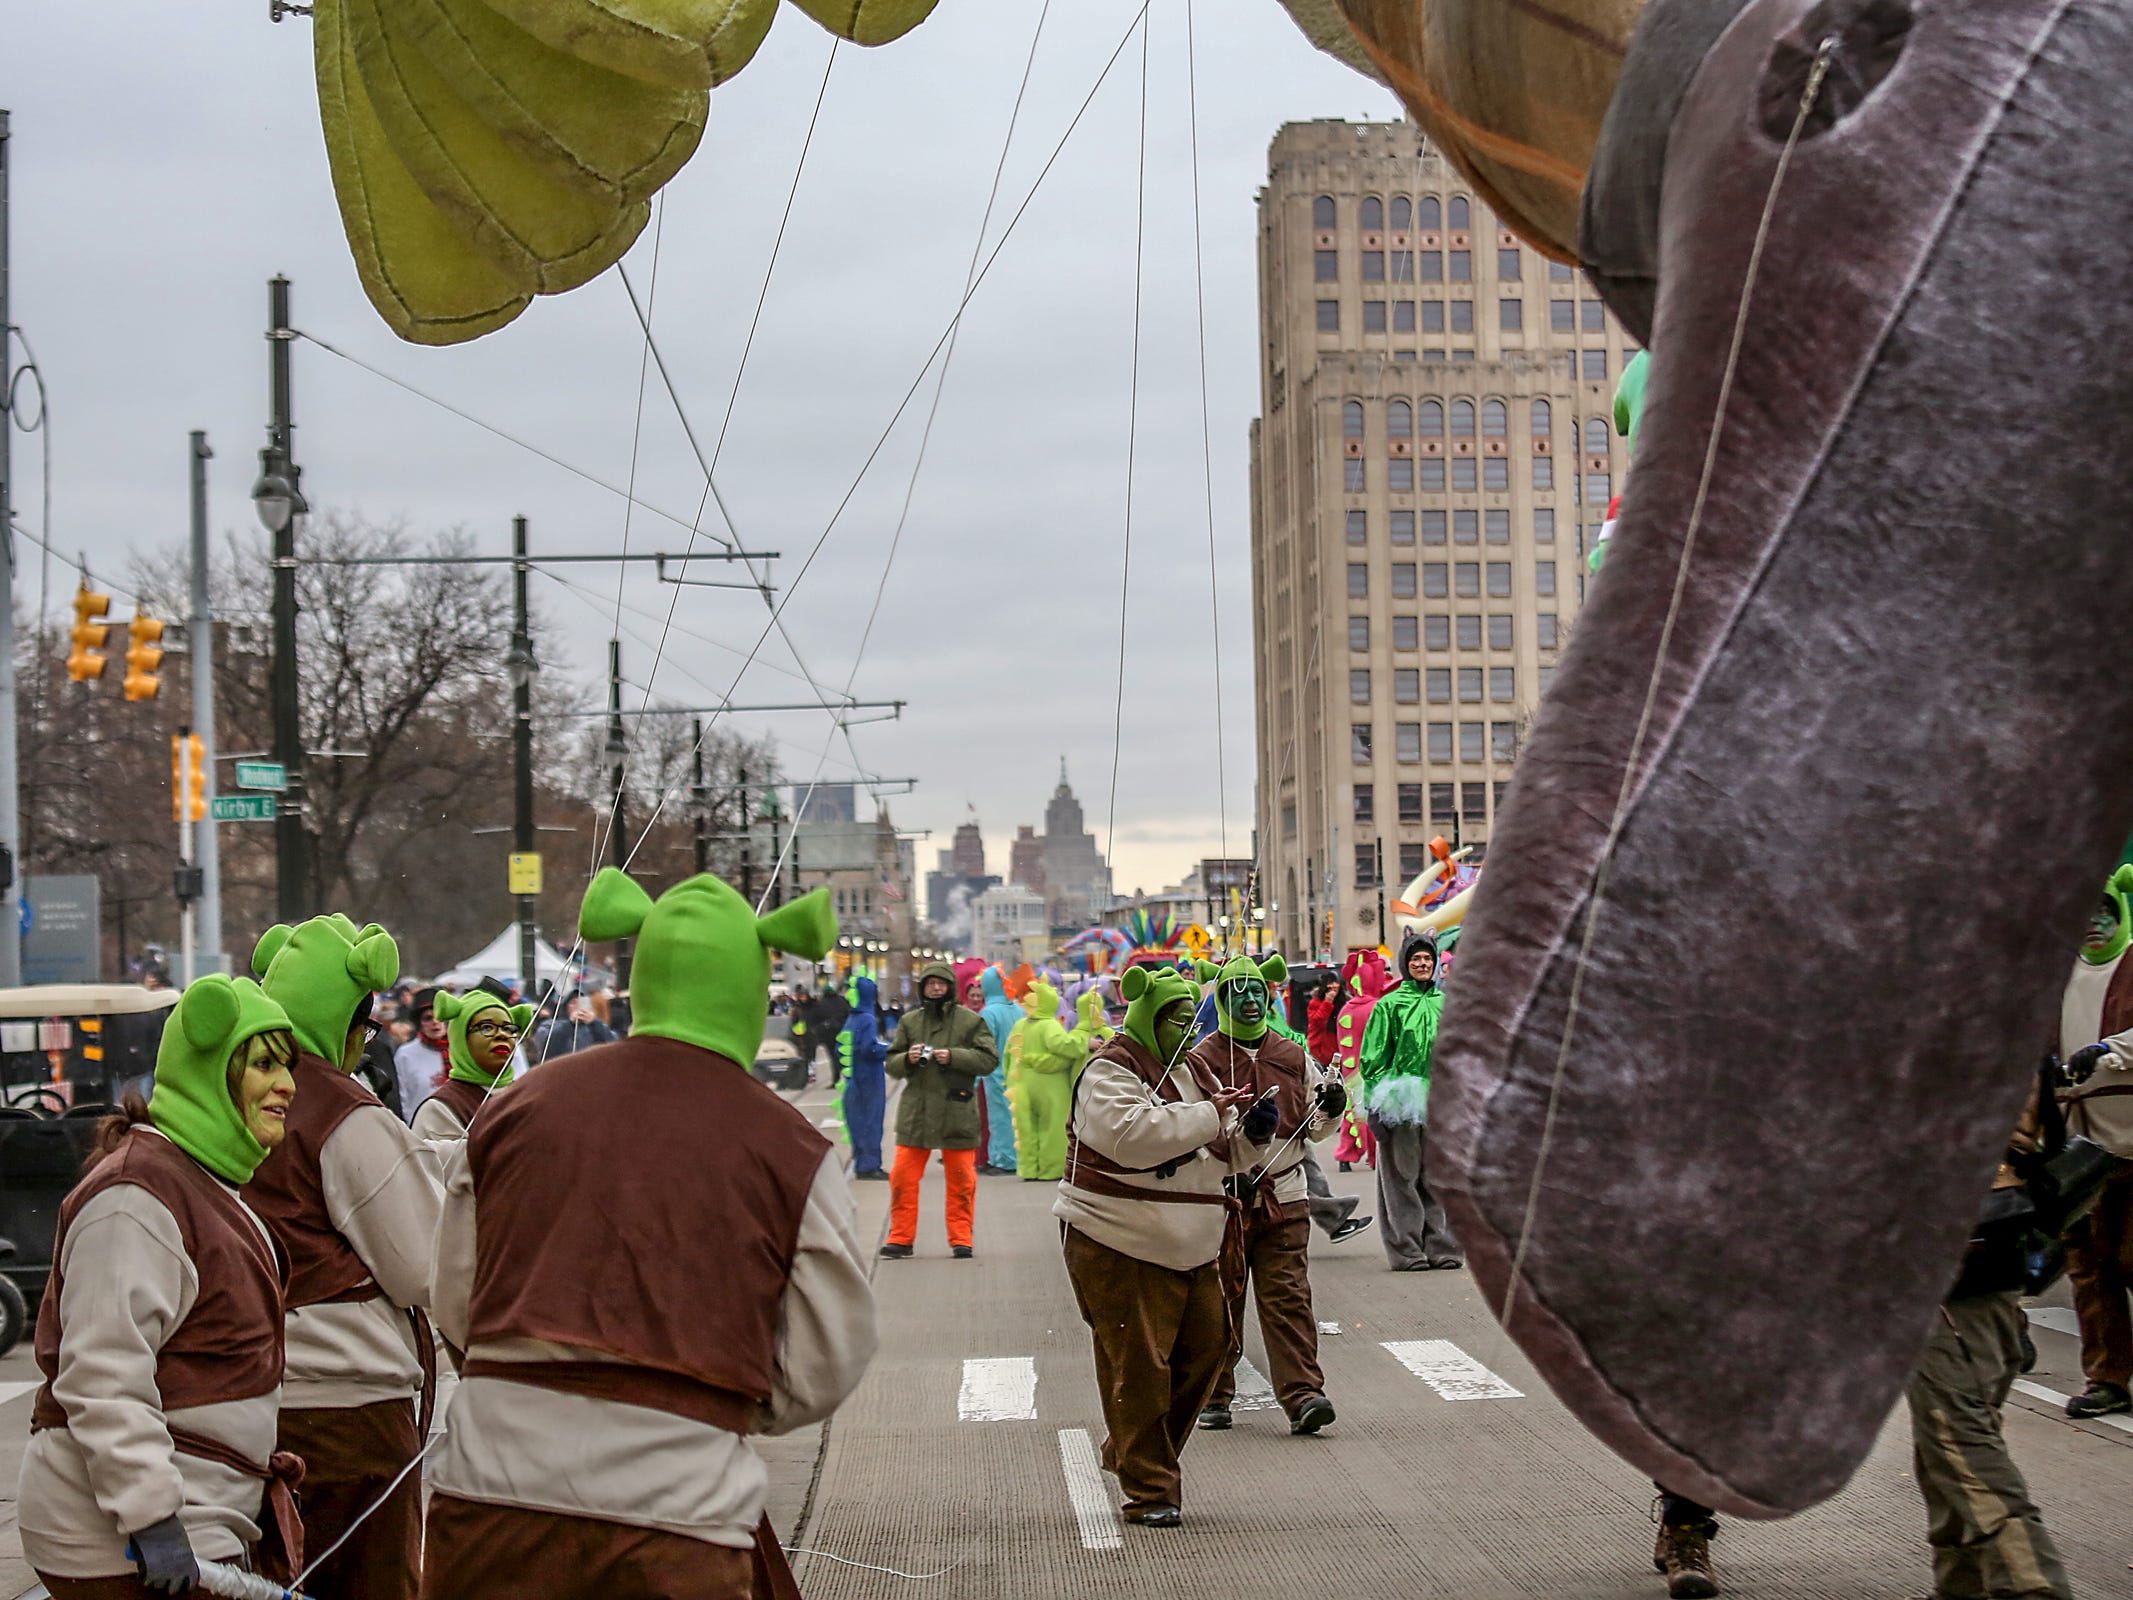 Shrek float handlers take a moment, during America's Thanksgiving Parade in Detroit on Thursday, Nov. 22, 2018.